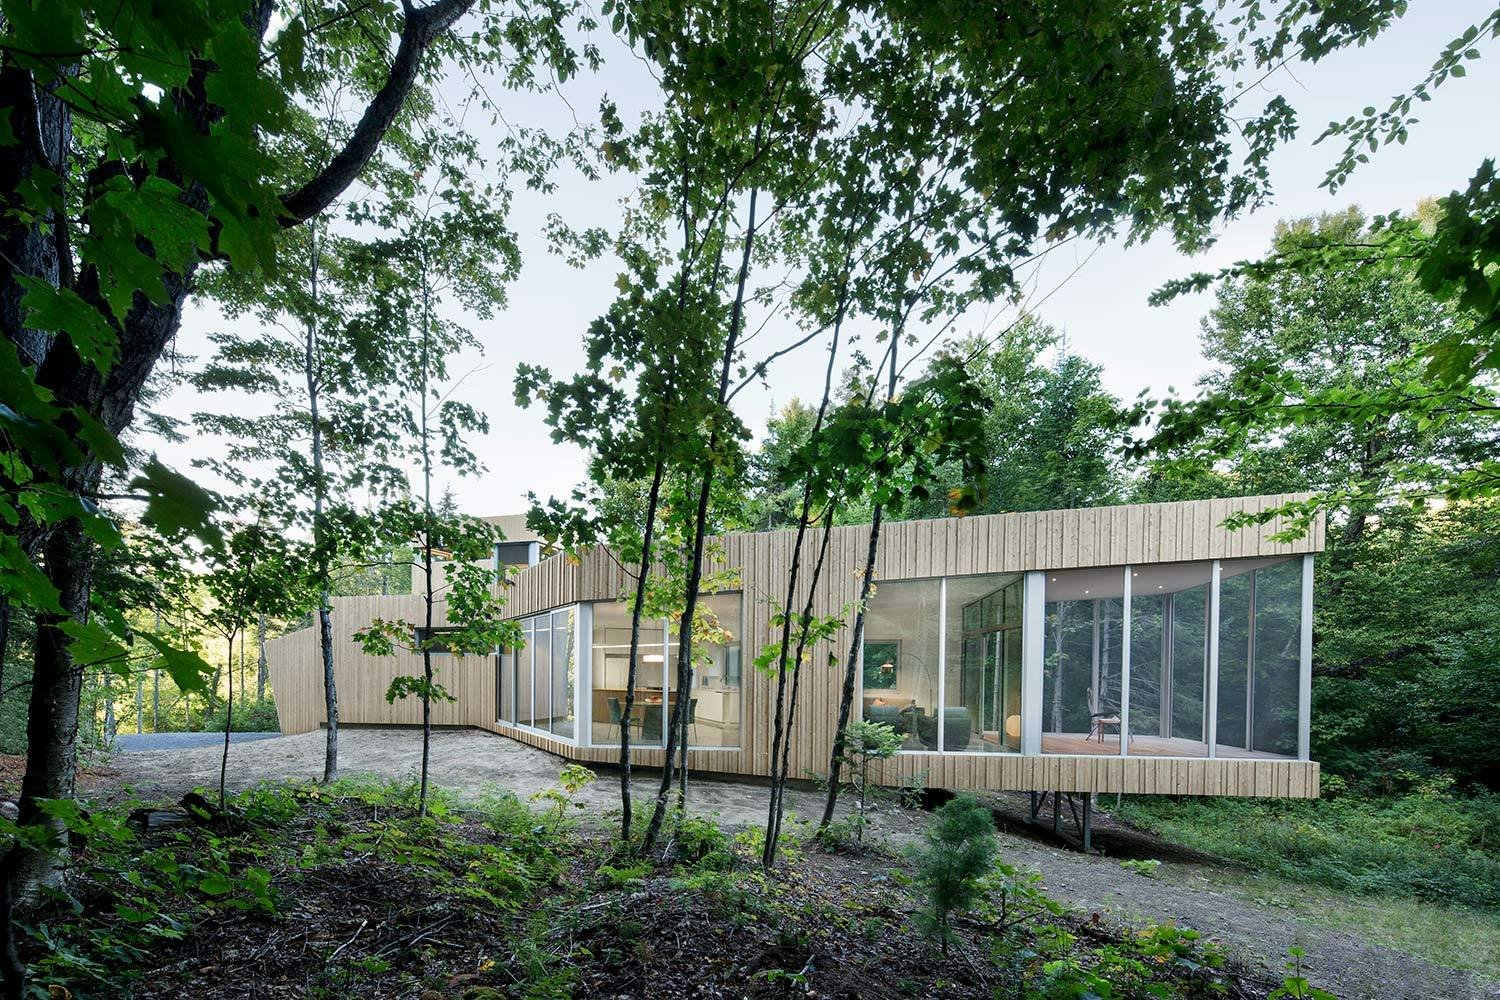 7 Incredible Modern Homes by Canadian Architect Paul Bernier - Photo 2 of 7 - The facade will turn gray and silver naturally, so its verticality, texture, and colors will blend in with the vertical tree trunks of the forest.